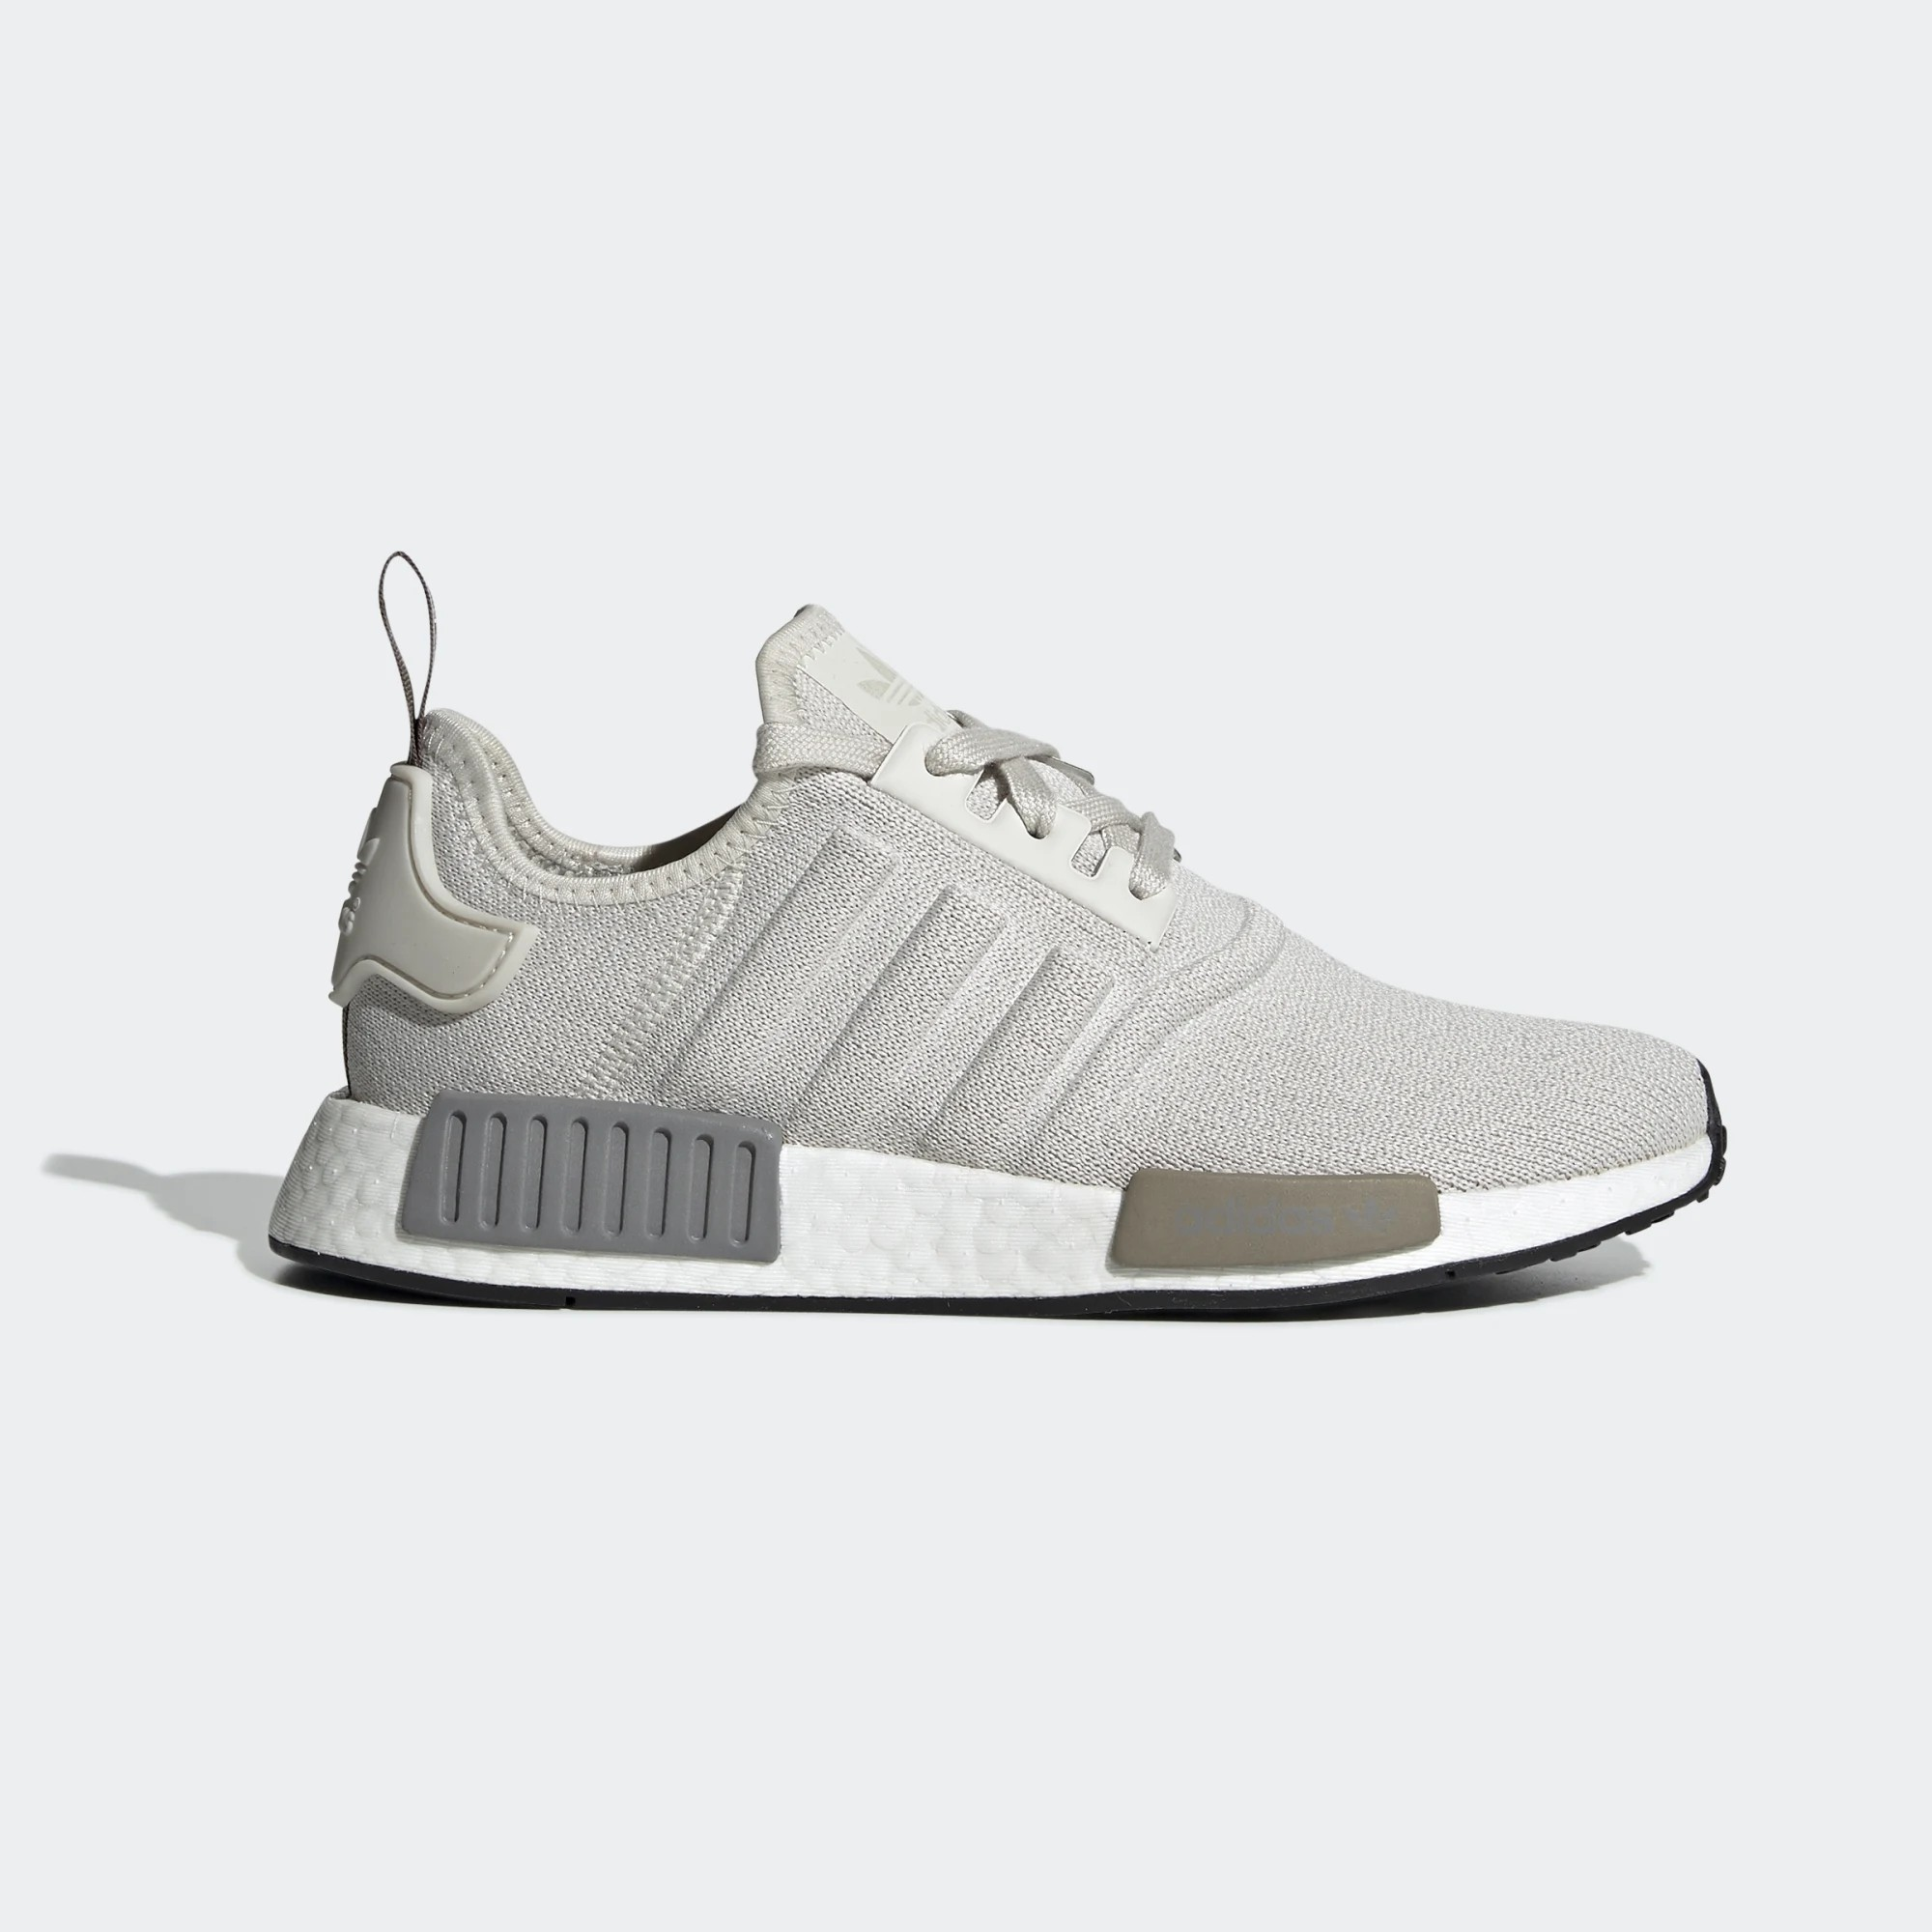 Adidas Originals Nmd R1 Women S Pk Pink Sneakers Bb2363